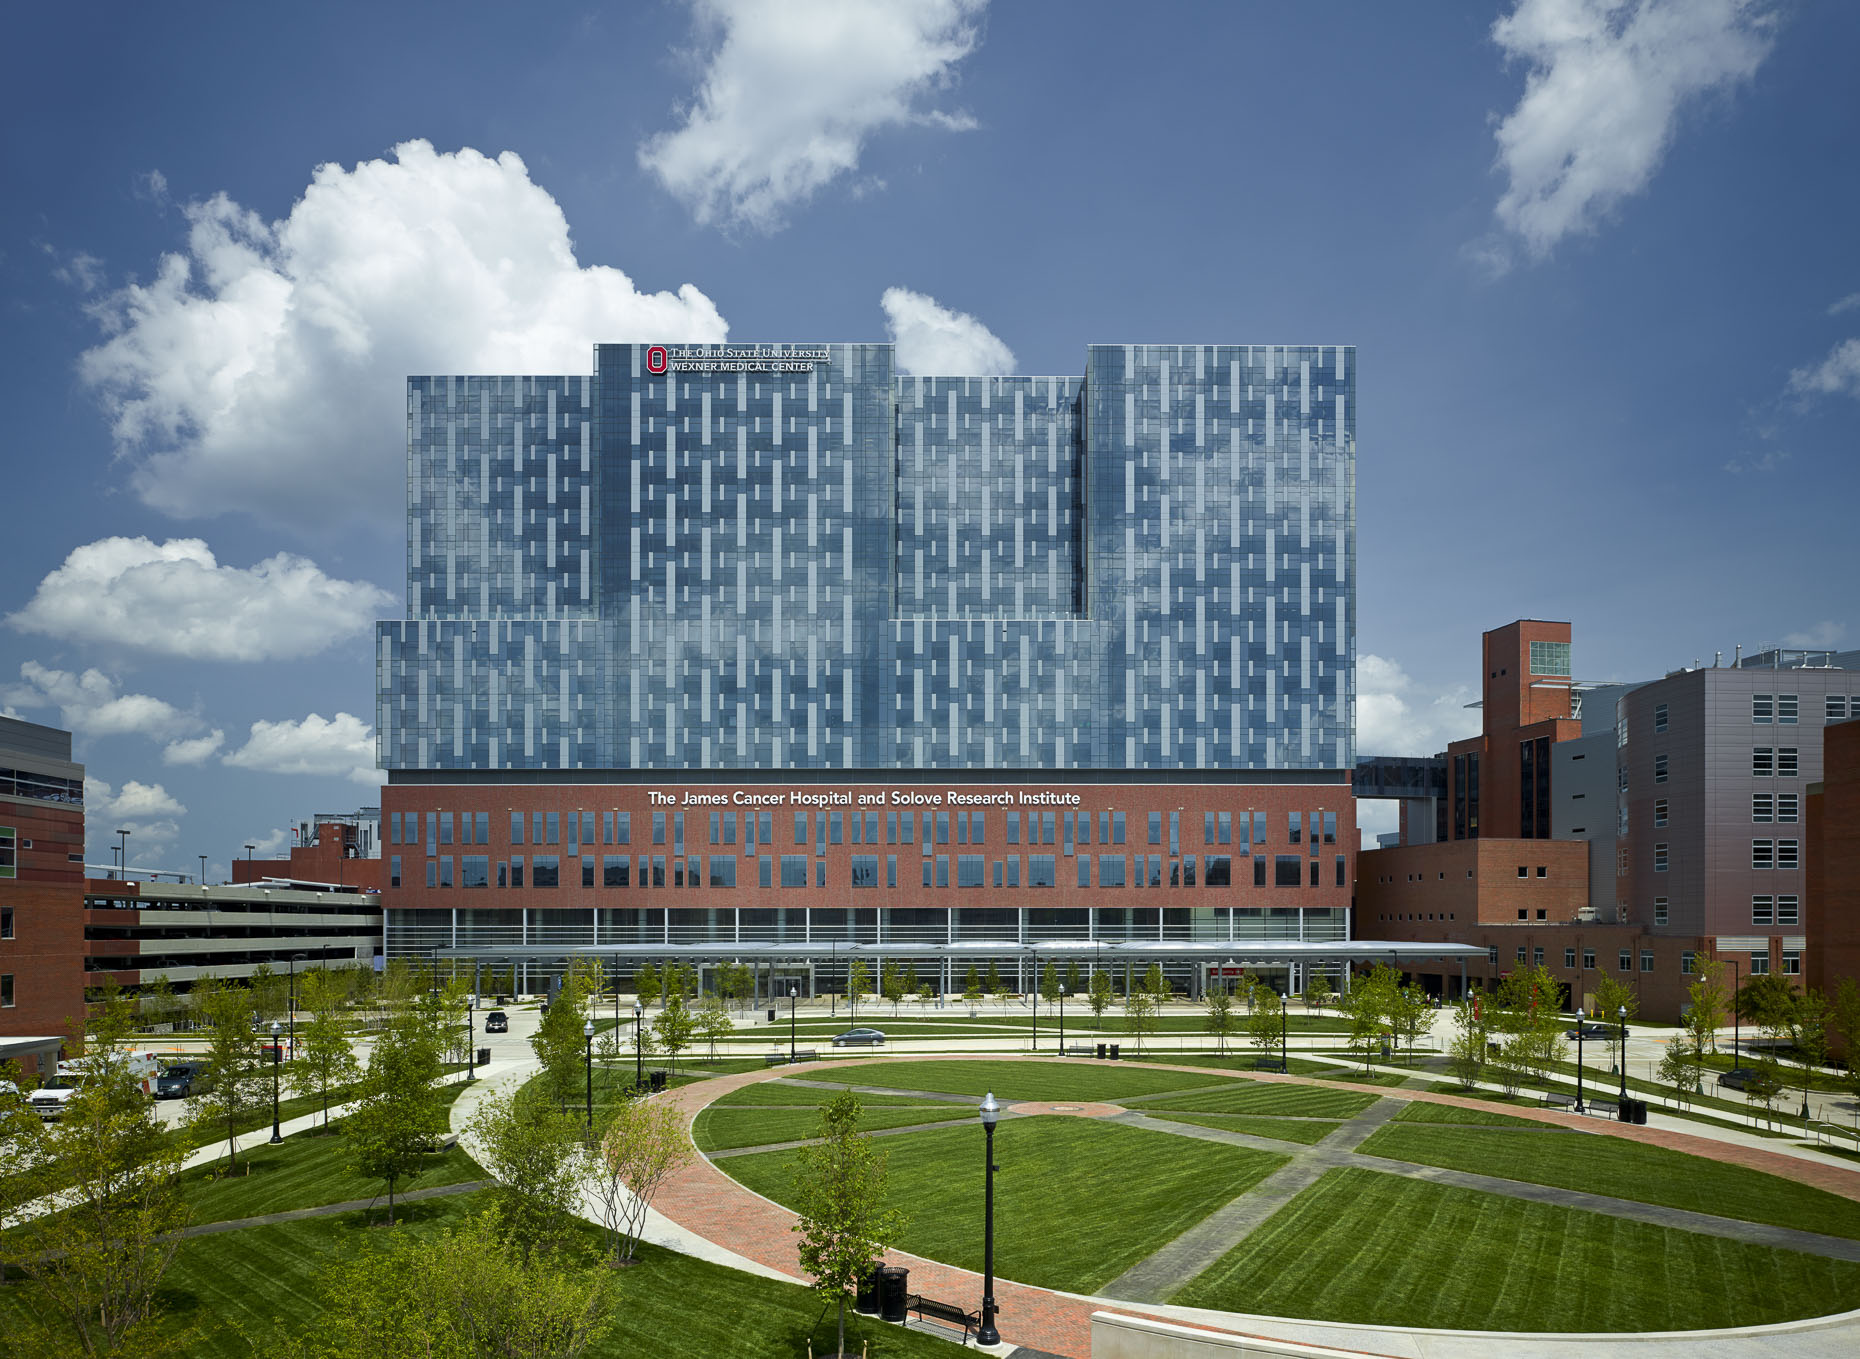 OSUWMC James Cancer Hospital & Solove Research Institute by HOK & Moody Nolan photographed by Brad Feinknopf based in Columbus, Ohio